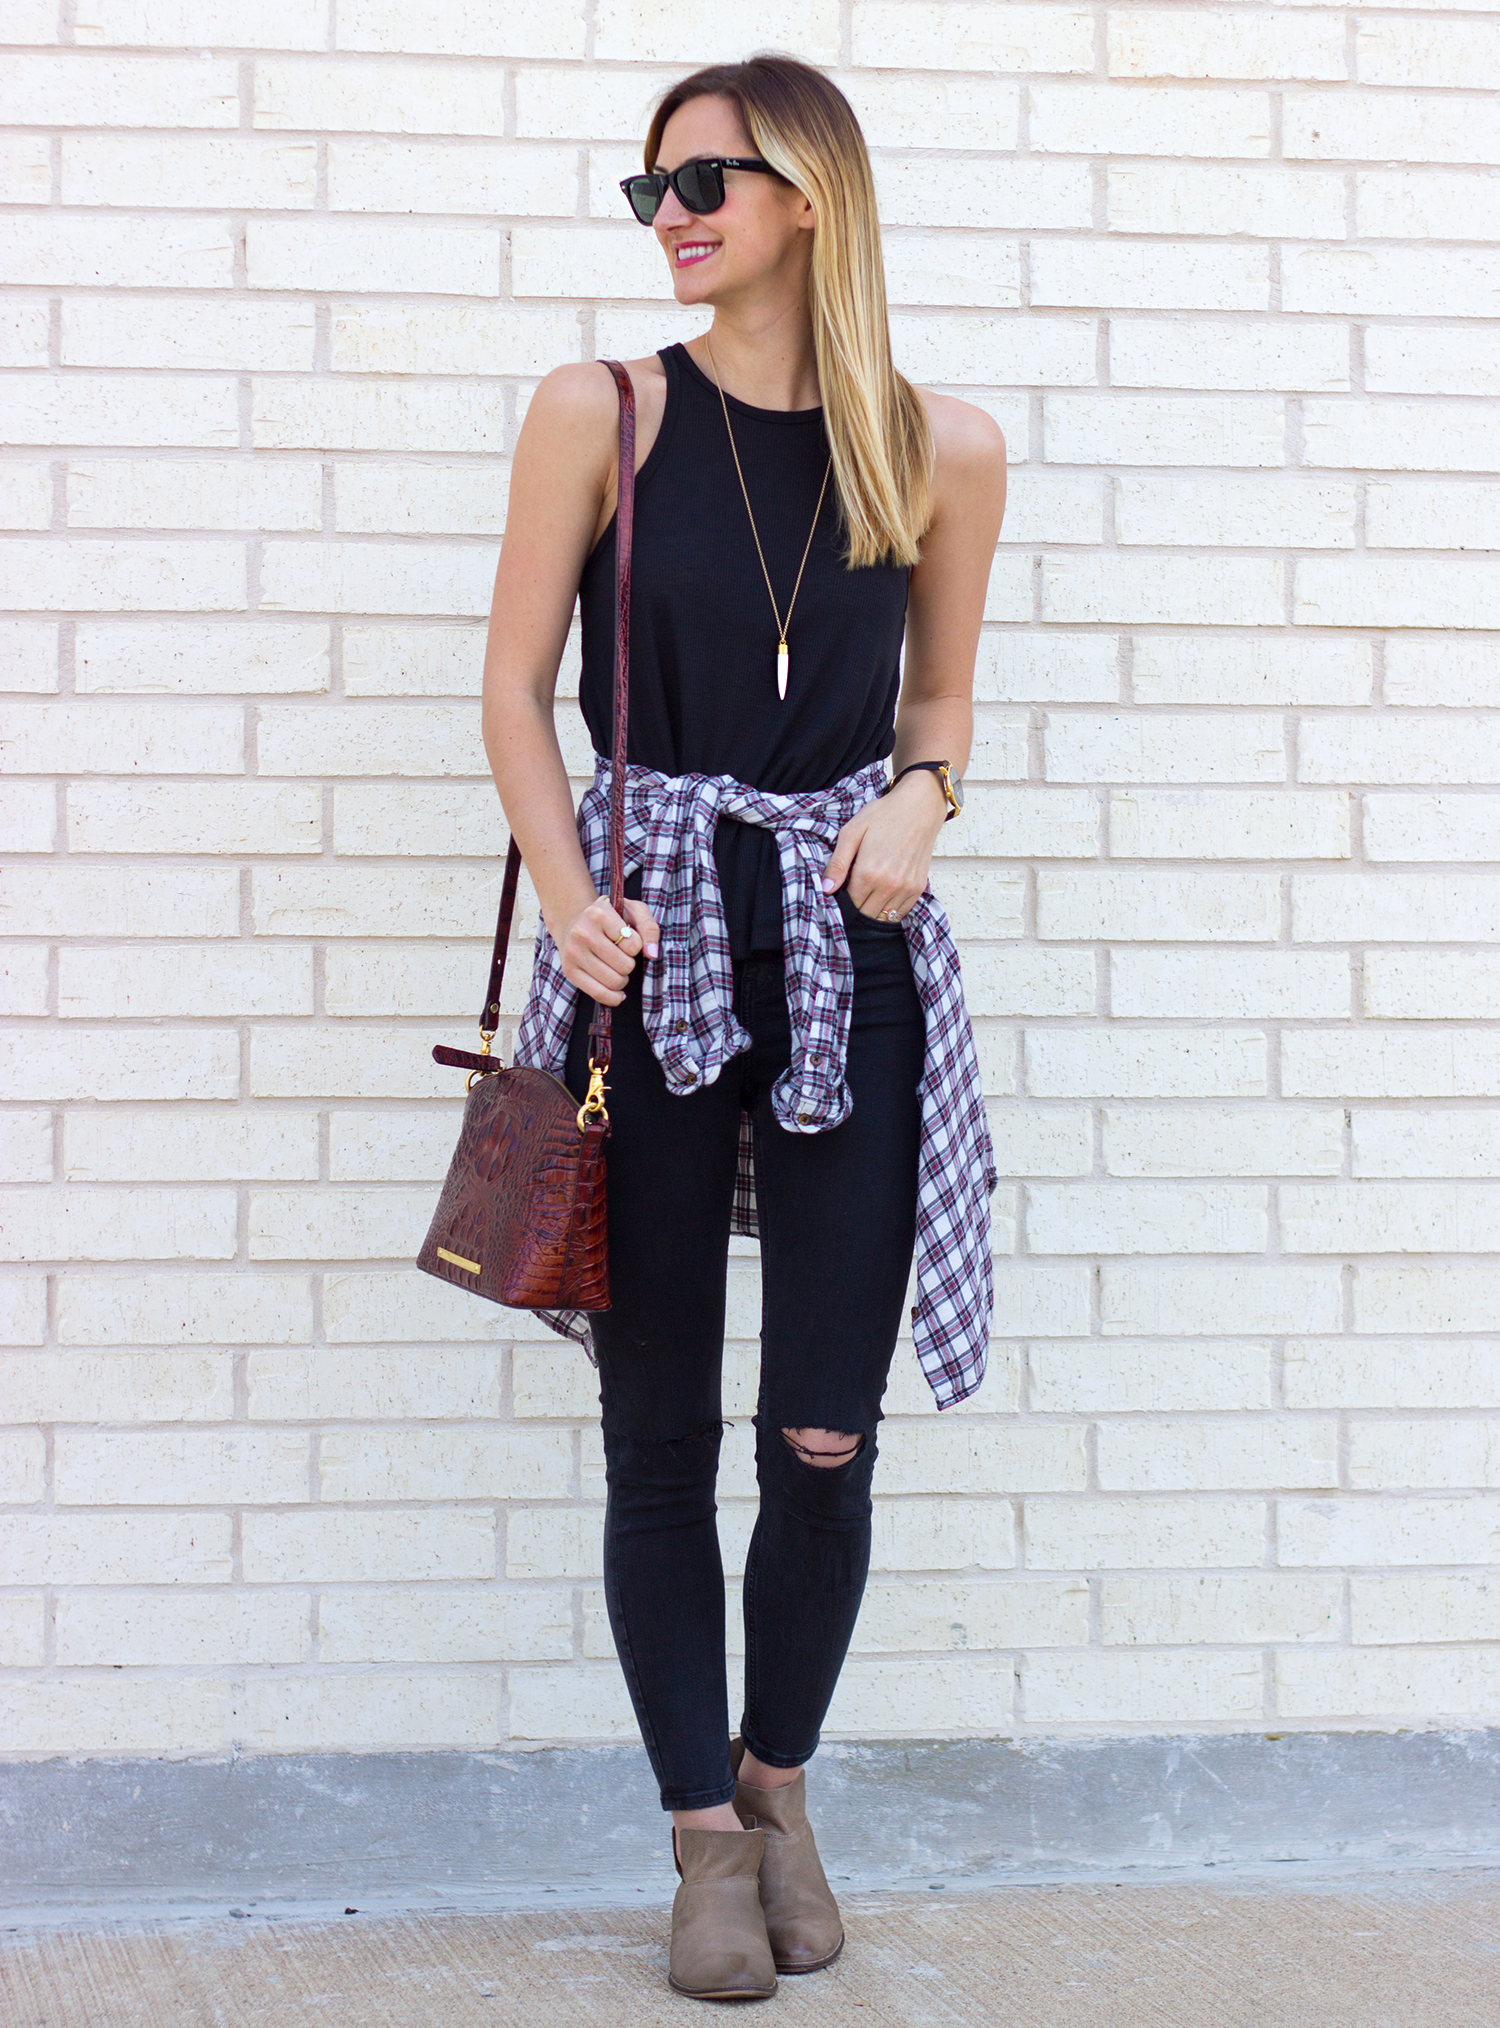 livvyland-blog-olivia-watson-austin-texas-fashion-blogger-free-people-razor-back-tank-top-black-on-black-boho-festival-outfit-sxsw-brahmin-duxbury-plaid-flannel-around-waist-seychelles-snare-9